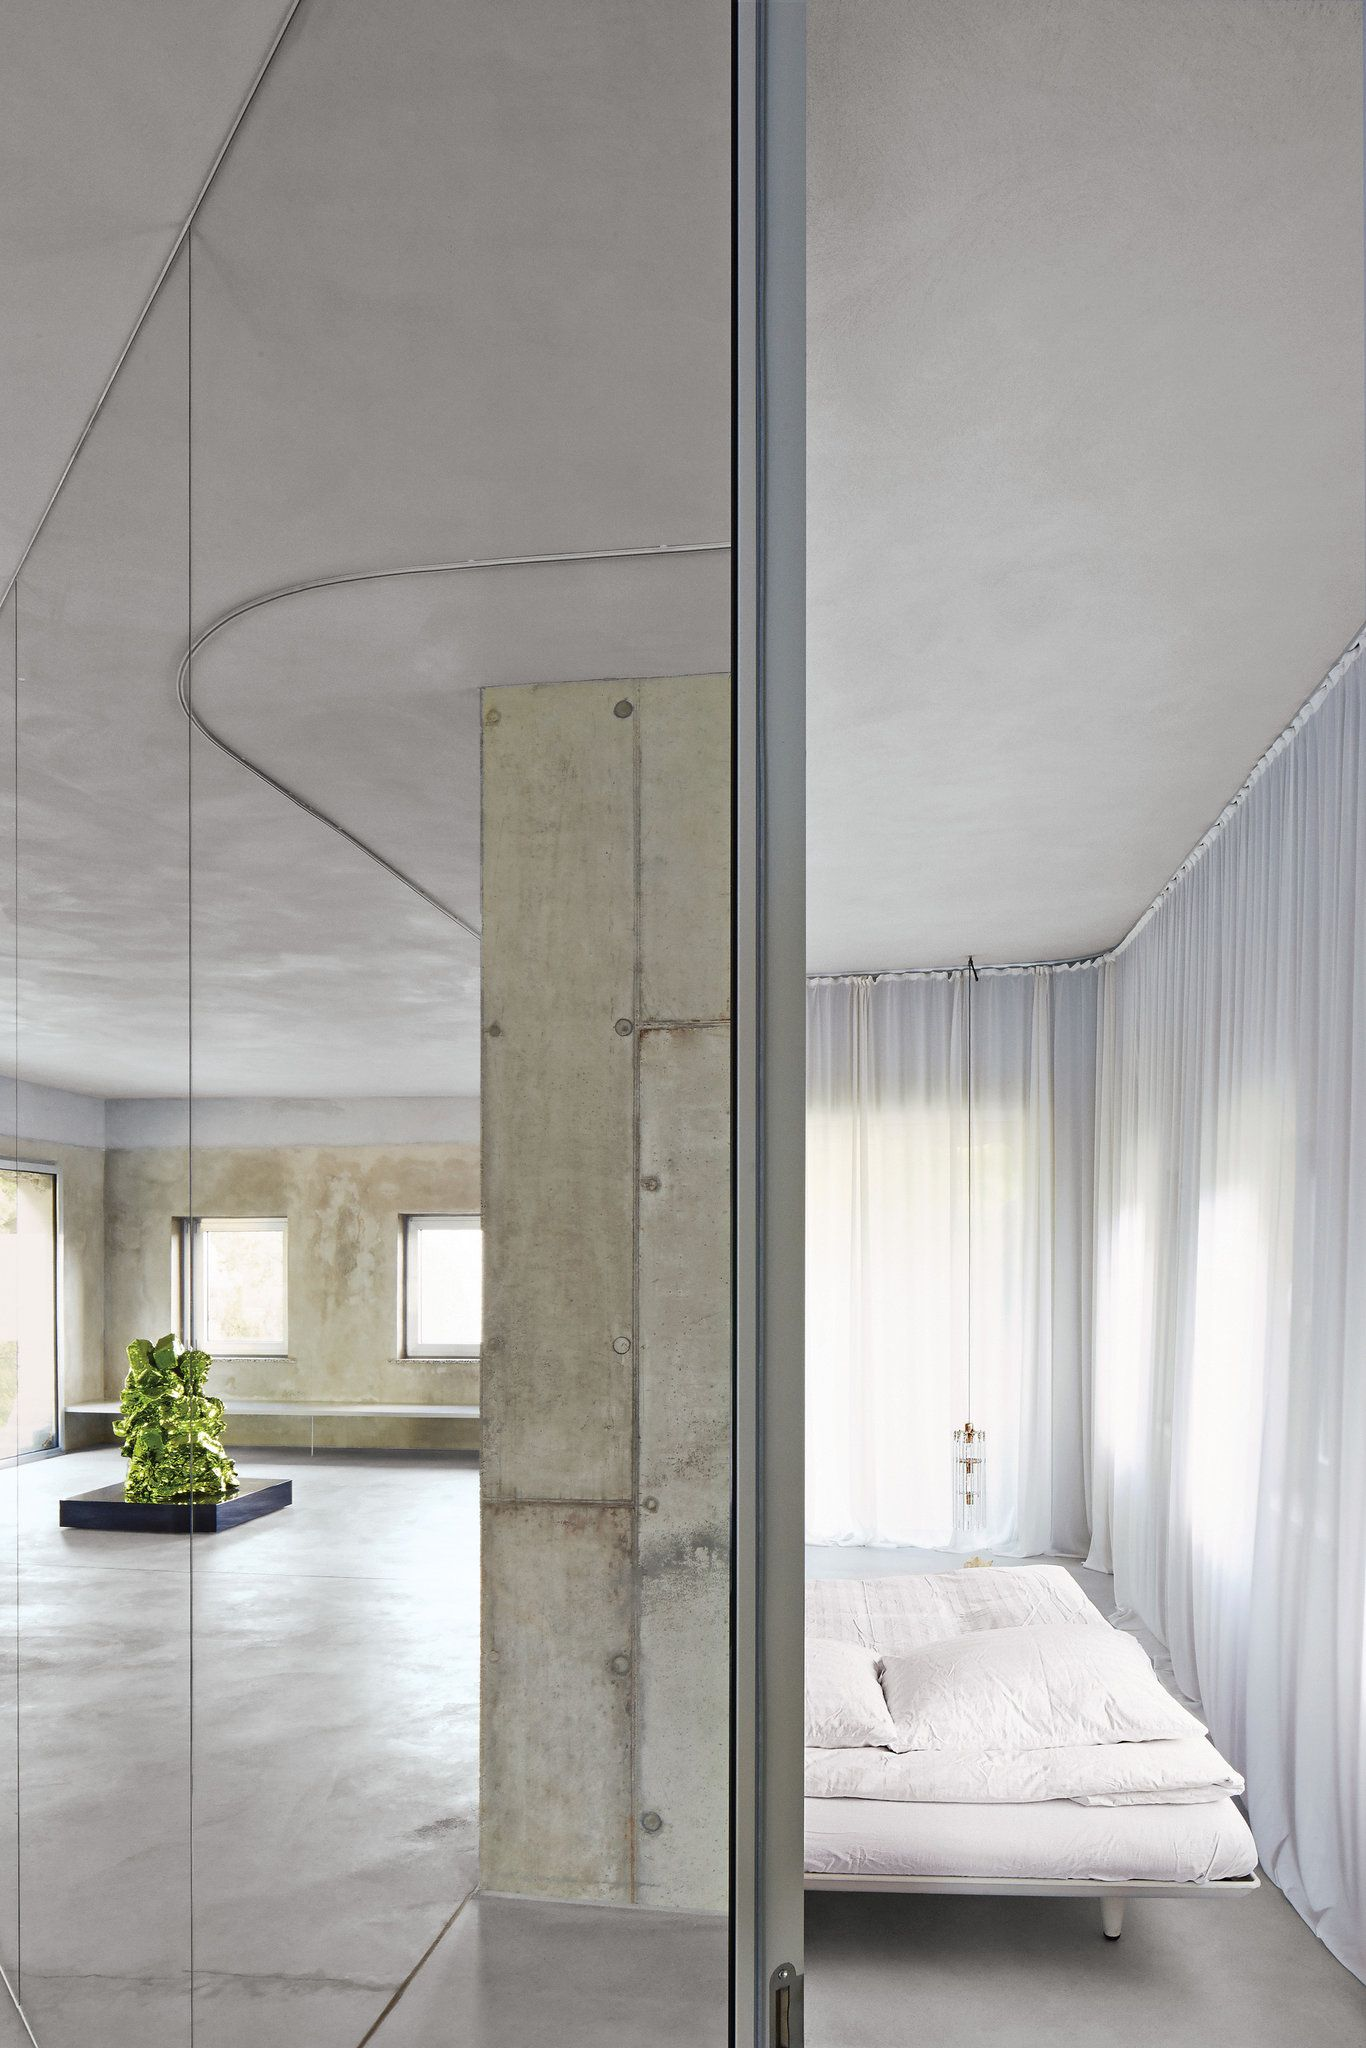 In a quaint bourgeois german town one architects concrete villa stands as a striking and unexpectedly elegant reminder of germanys cold war past